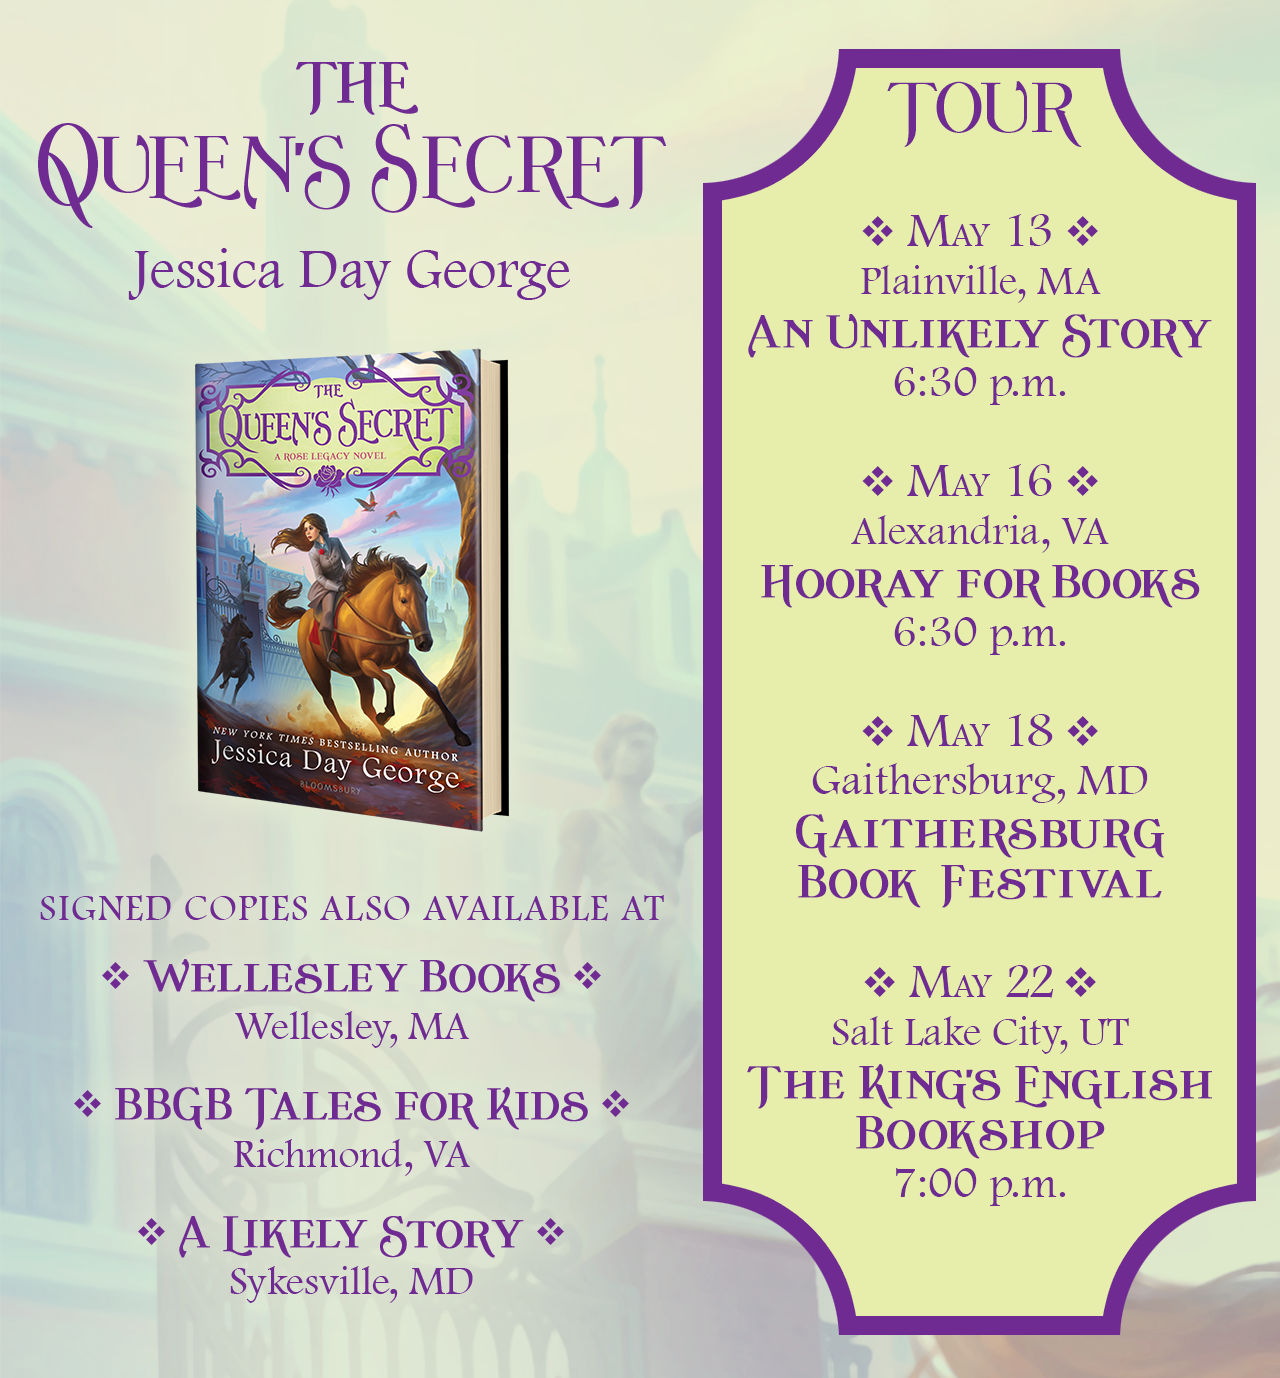 TheQueen'sSecret_TourGraphic.png